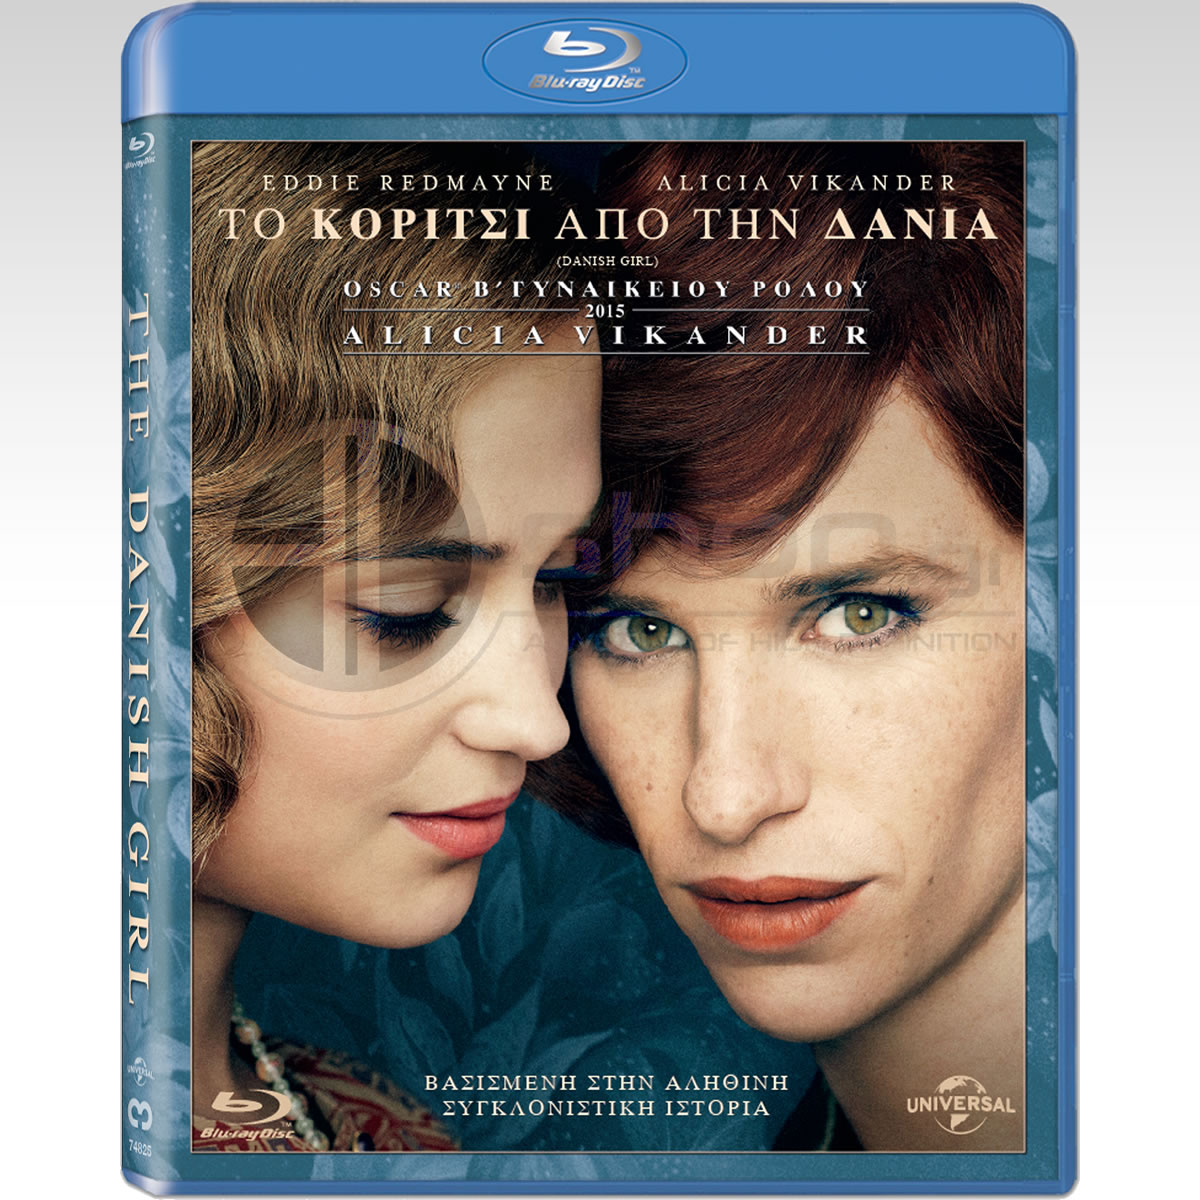 THE DANISH GIRL - TO ΚΟΡΙΤΣΙ ΑΠΟ ΤΗ ΔΑΝΙΑ (BLU-RAY)